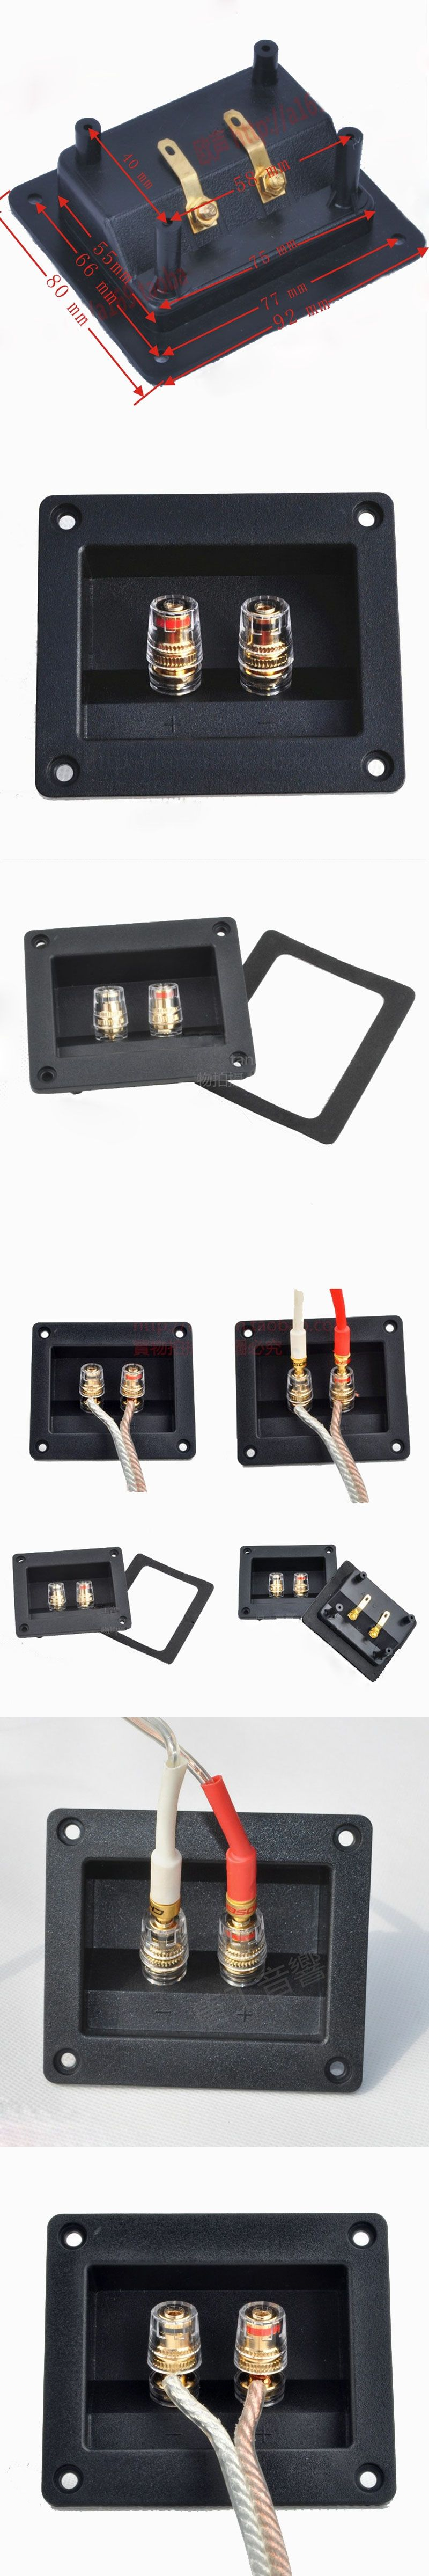 10pcs high quality two speaker junction box connector audio 10pcs high quality two speaker junction box connector audio speaker board thickened audio wiring panel copper sciox Image collections